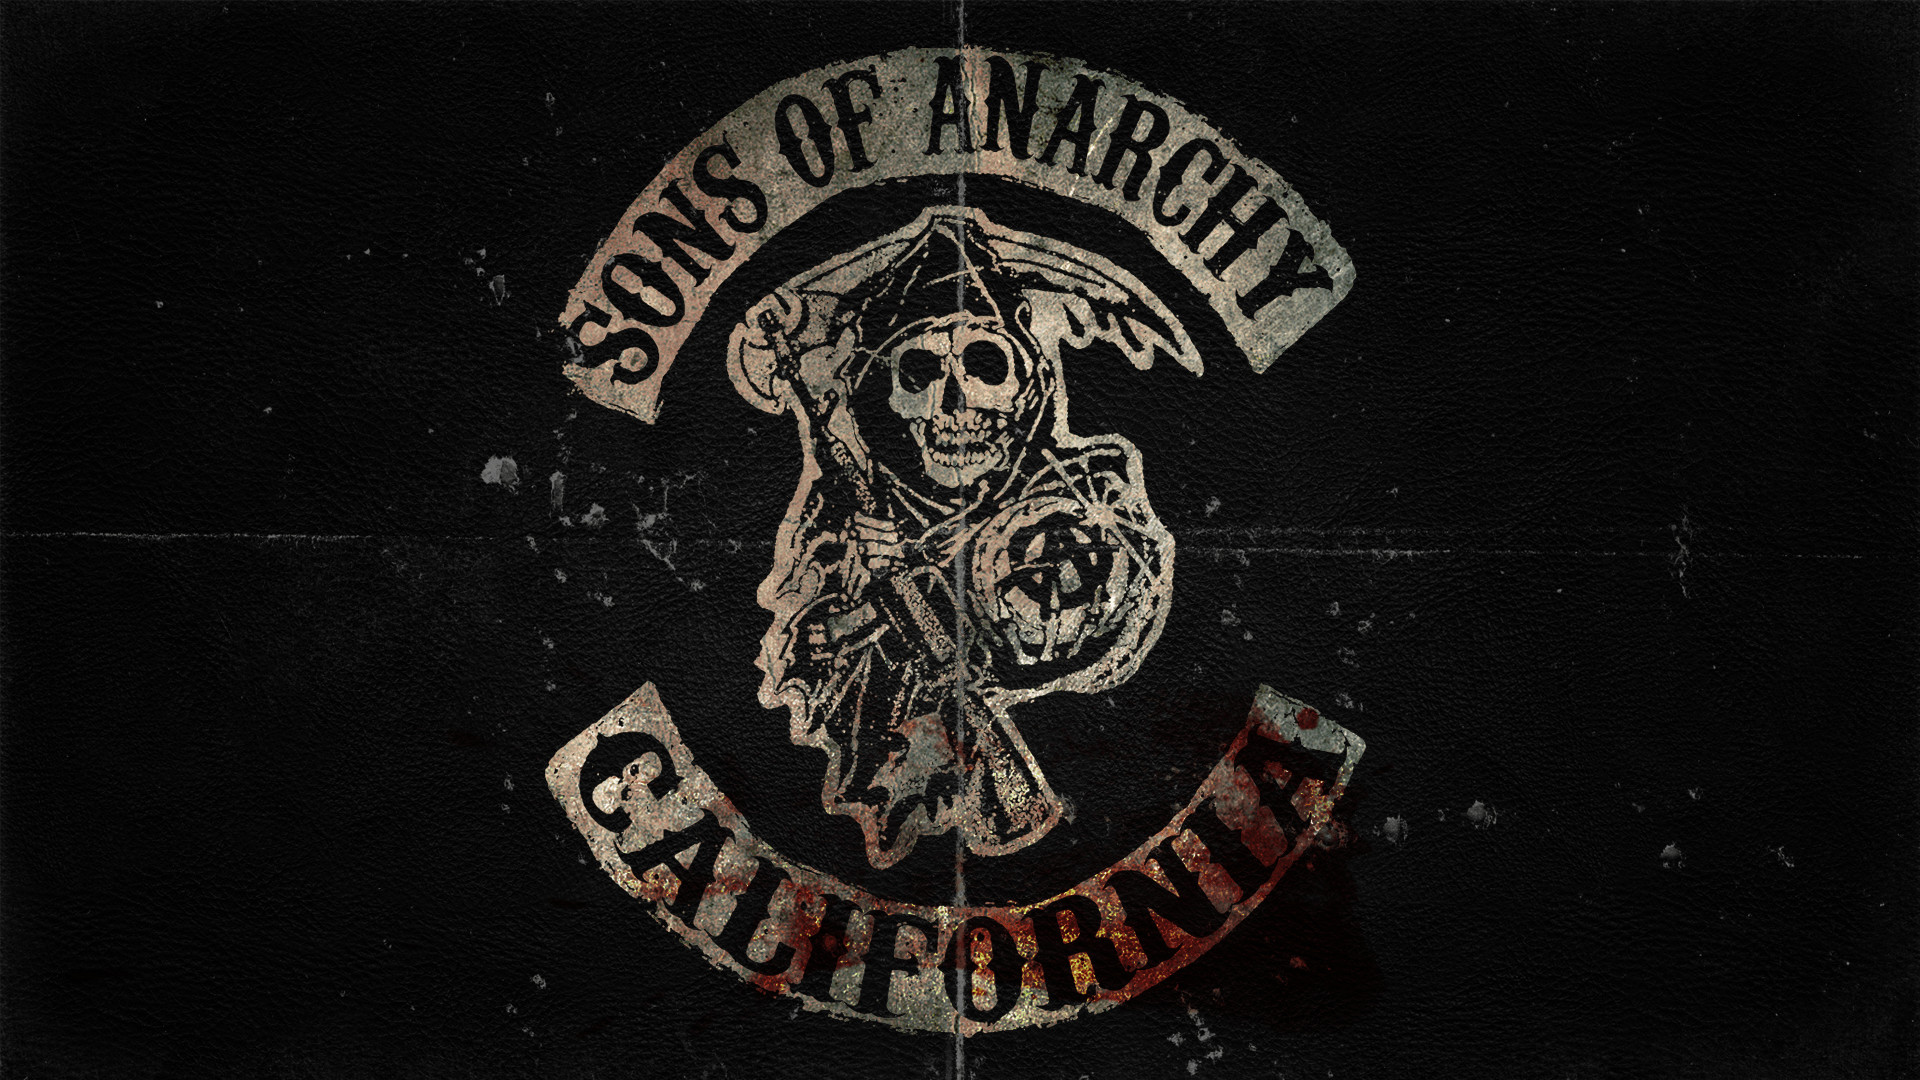 1920x1080 Sons Of Anarchy Wallpapers and Background Images - stmed.net